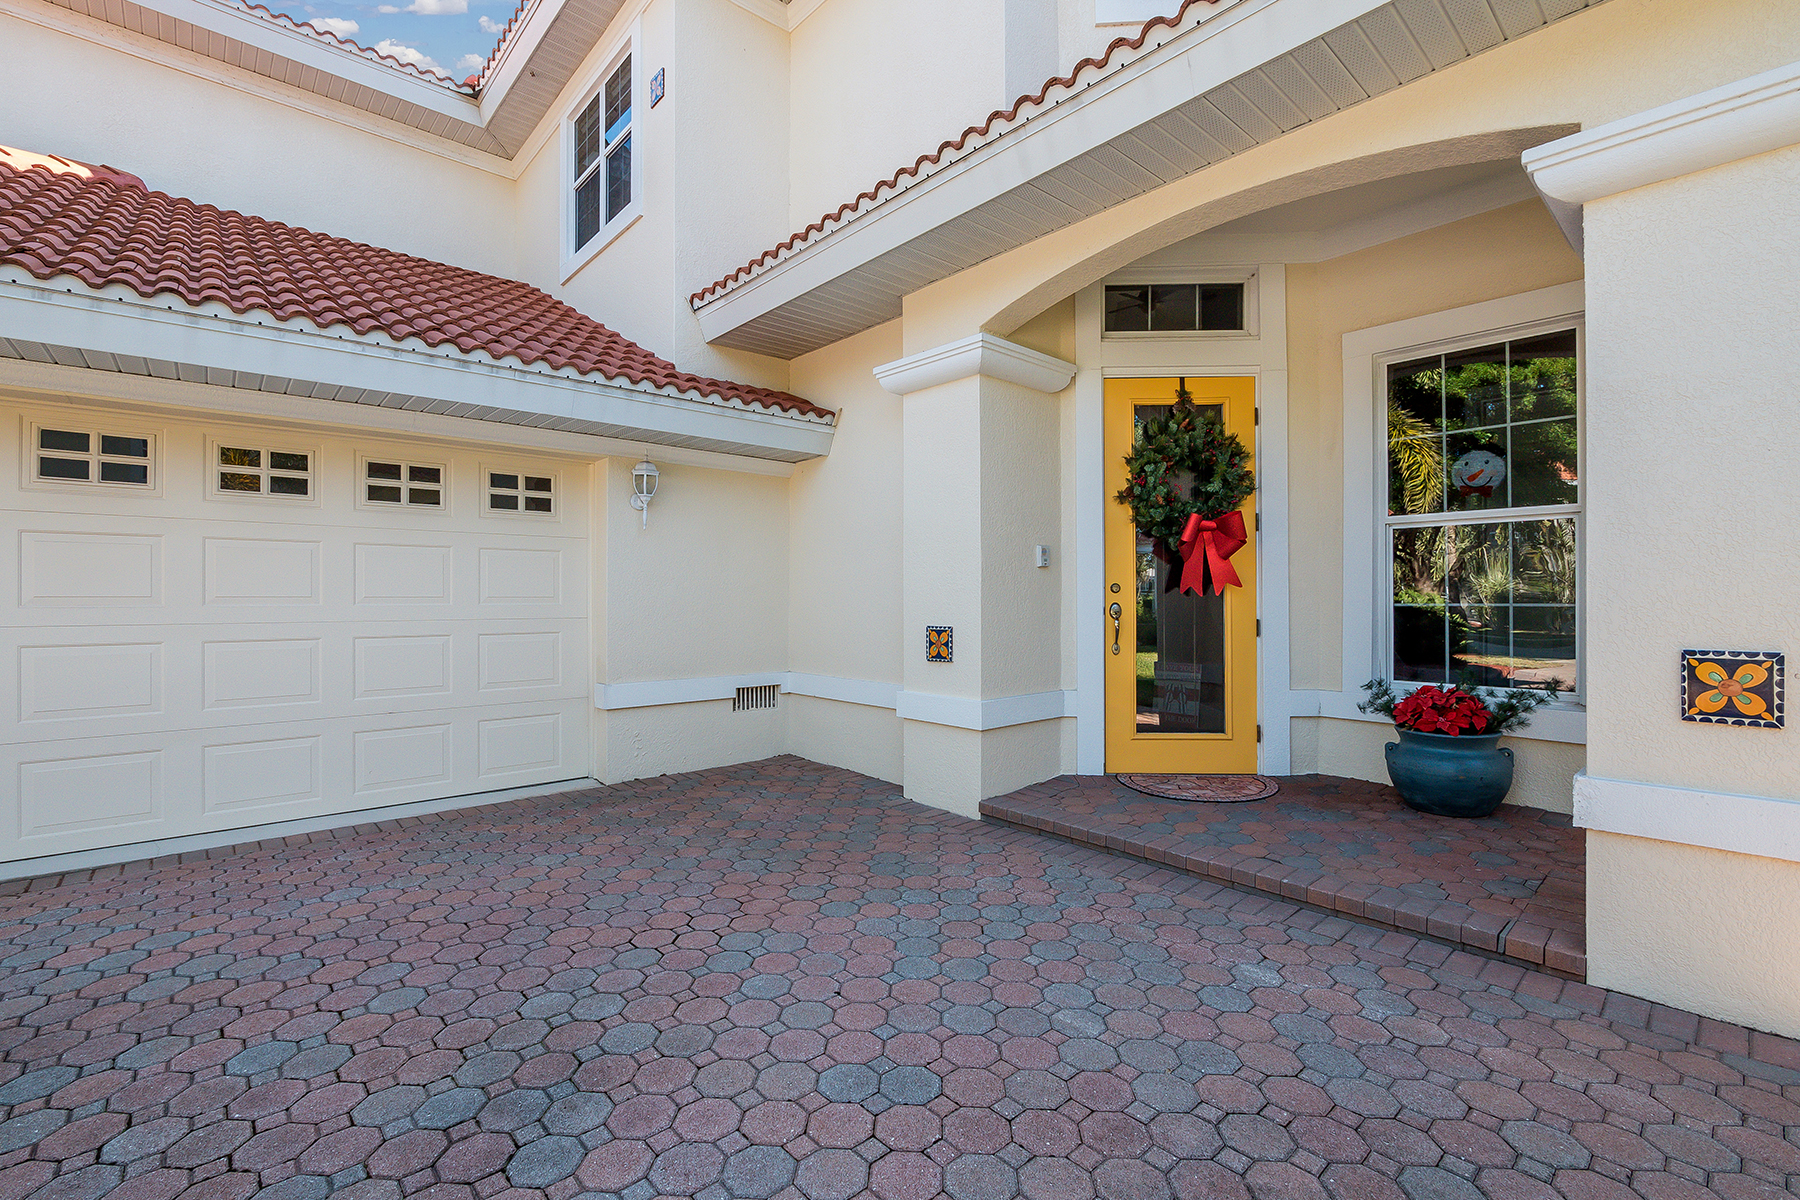 Single Family Home for Sale at 4110 Osprey Harbour Loop, Cortez, FL 34215 4110 Osprey Harbour Loop Cortez, Florida 34215 United States